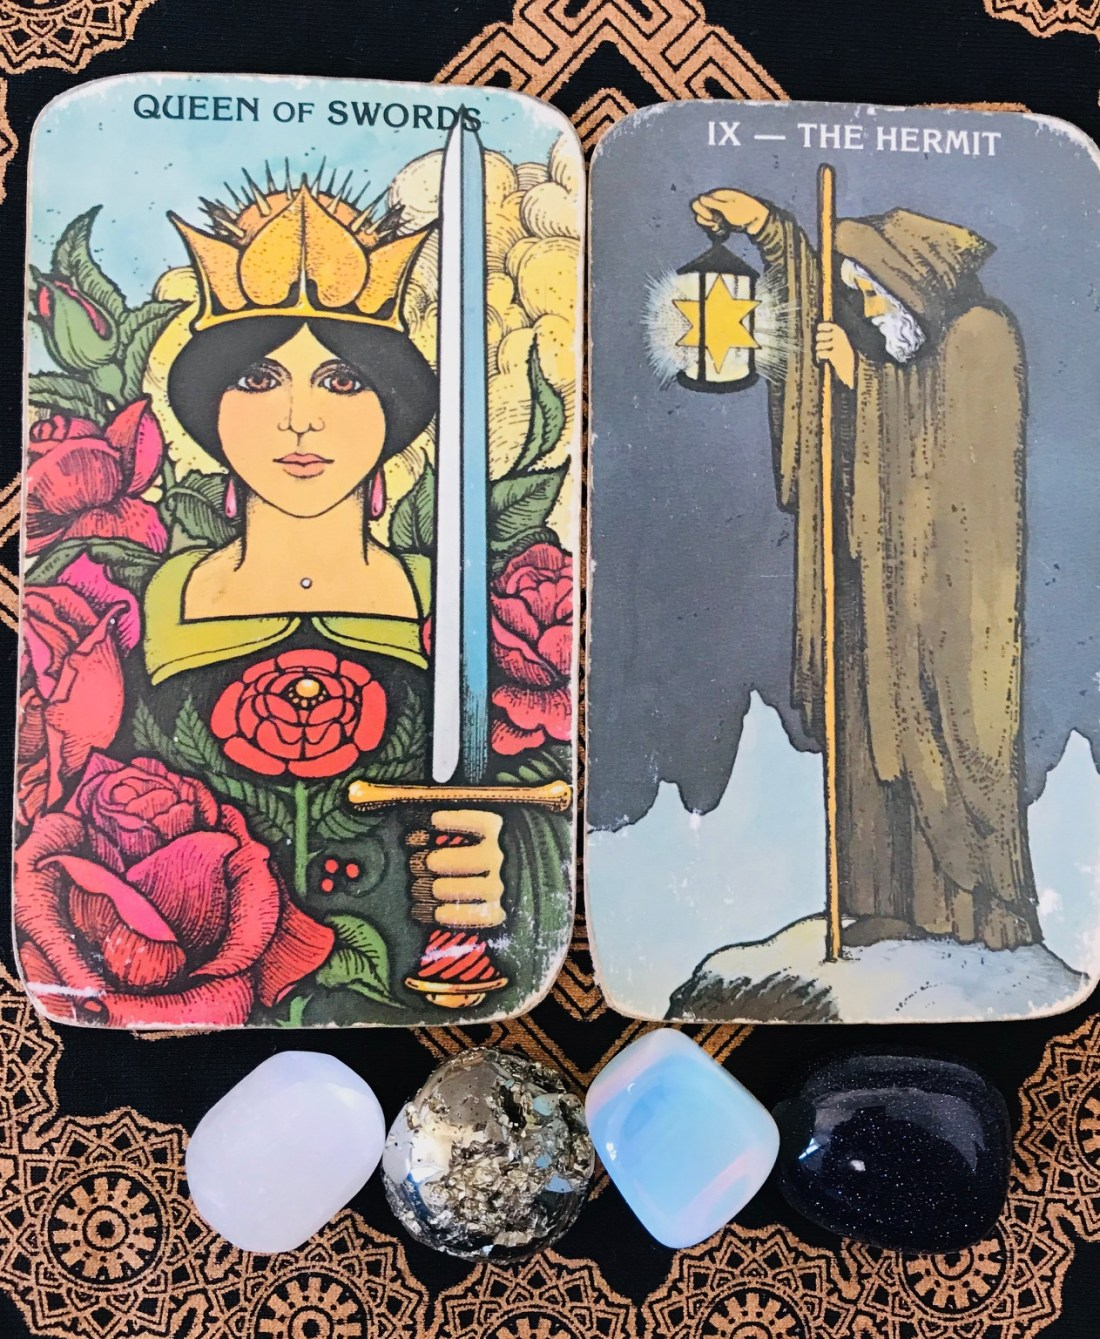 Be wise and be kind. Queen of Swords and Hermit Tarot cards.